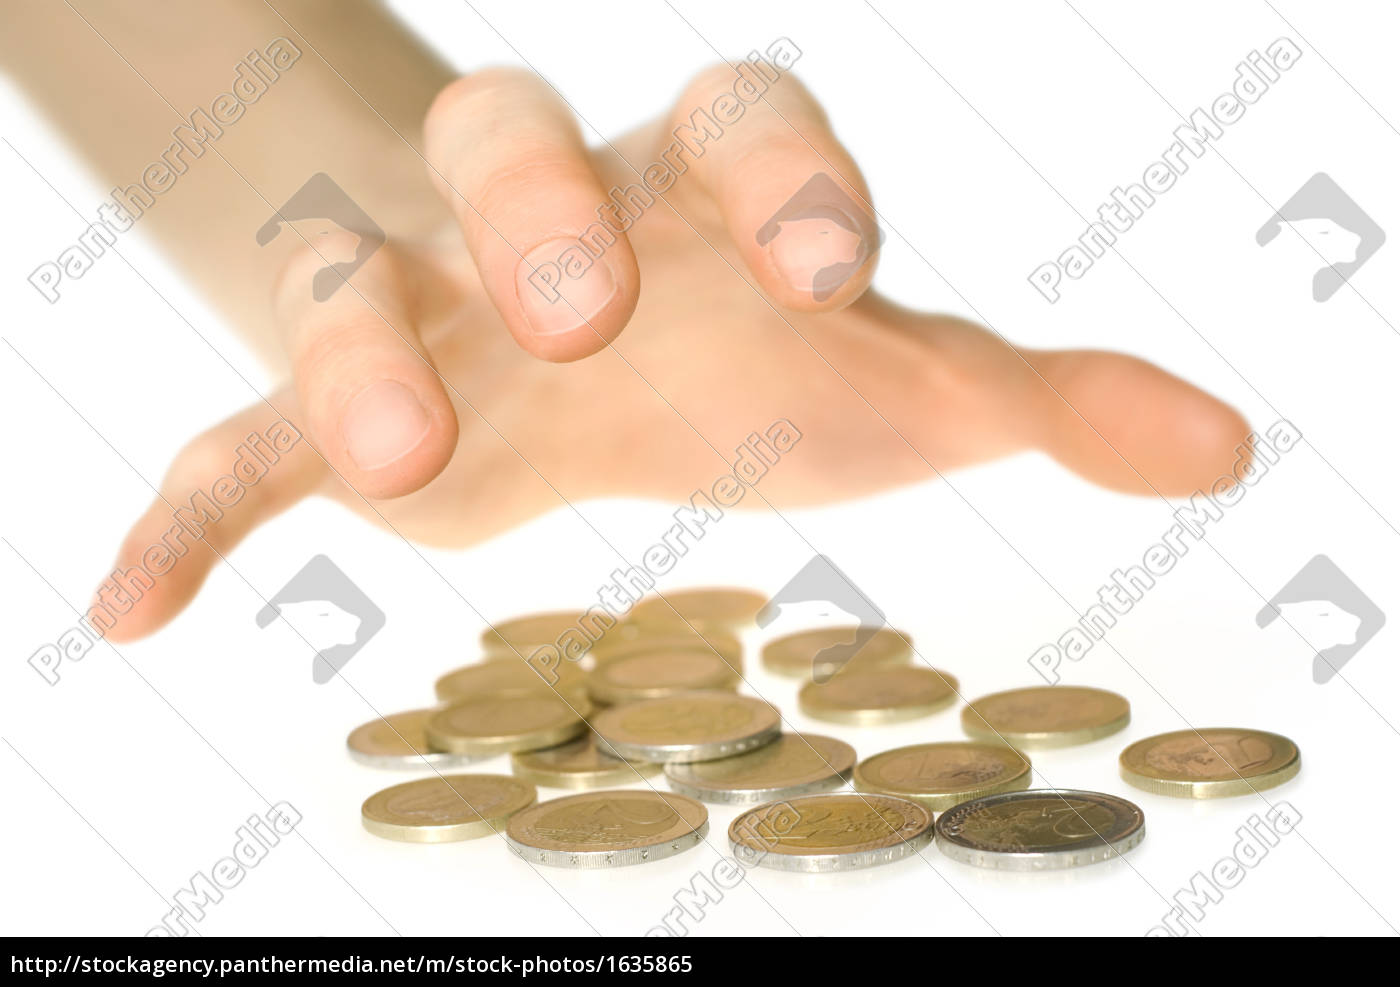 hand, reaching, for, money, isolated - 1635865